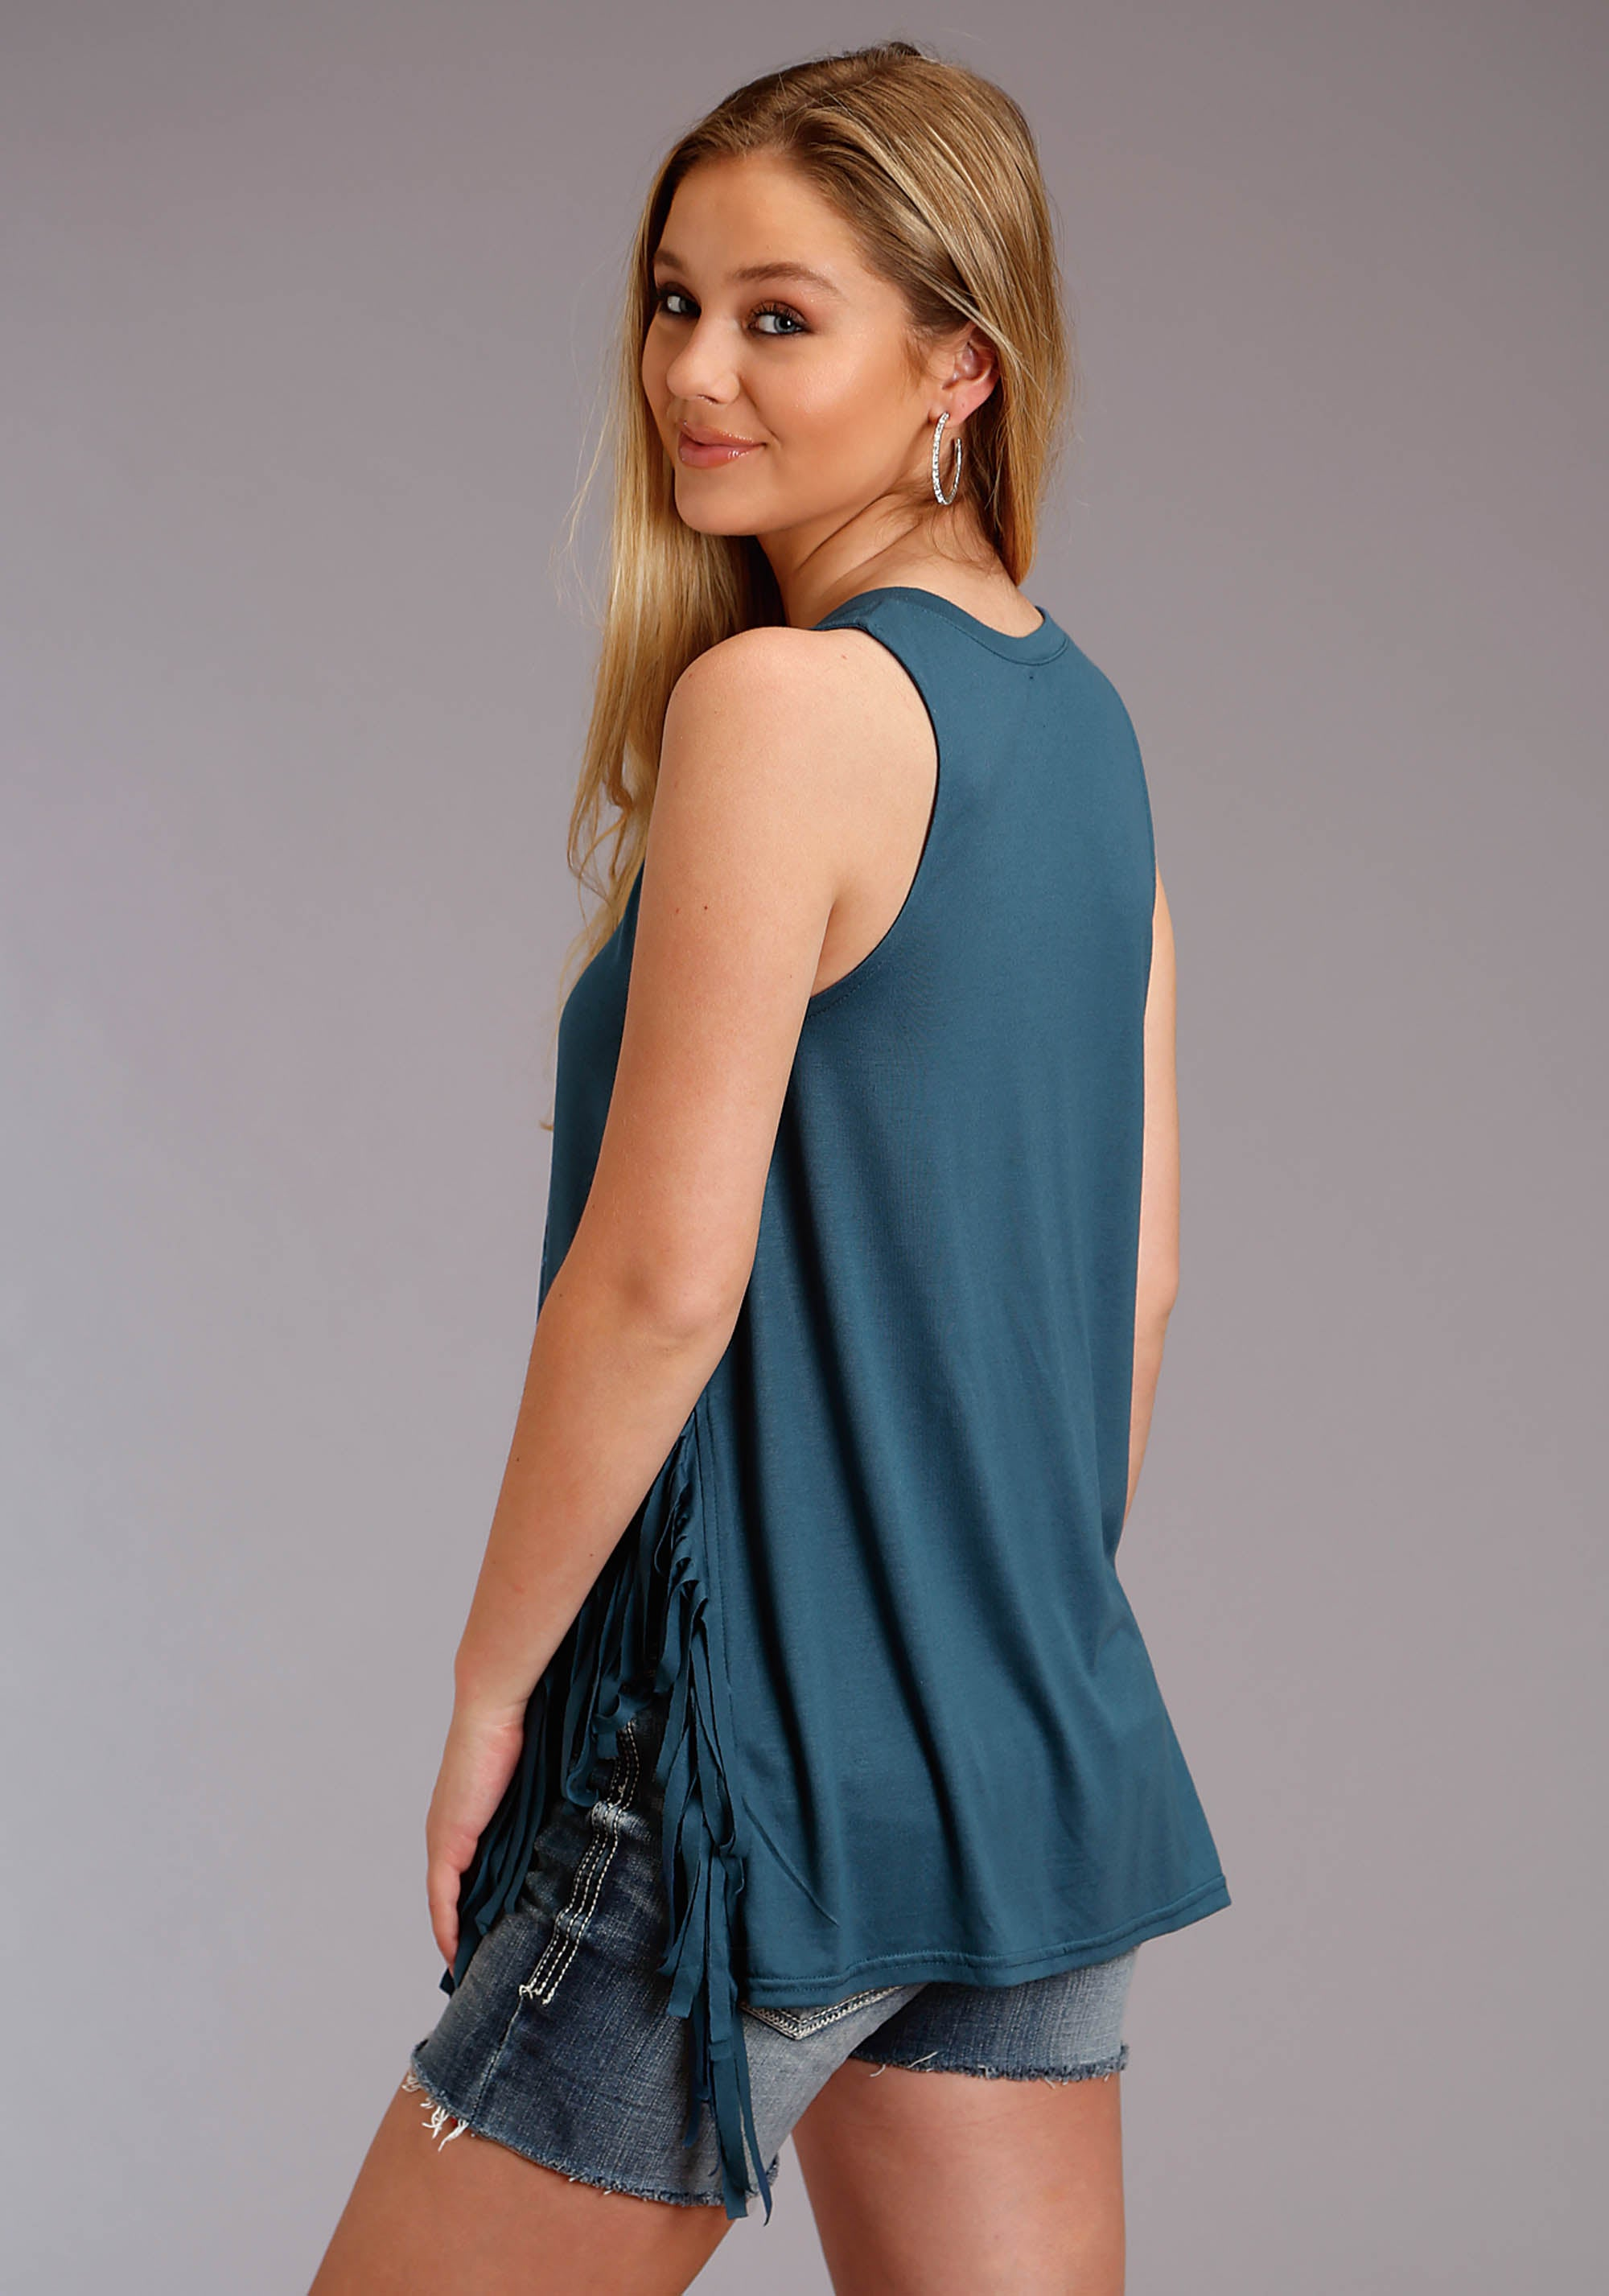 ROPER WOMENS BLUE 3126 POLY RAYON JERSEY TANK FIVE STAR COLLECTION- SPRING III SLEEVELESS